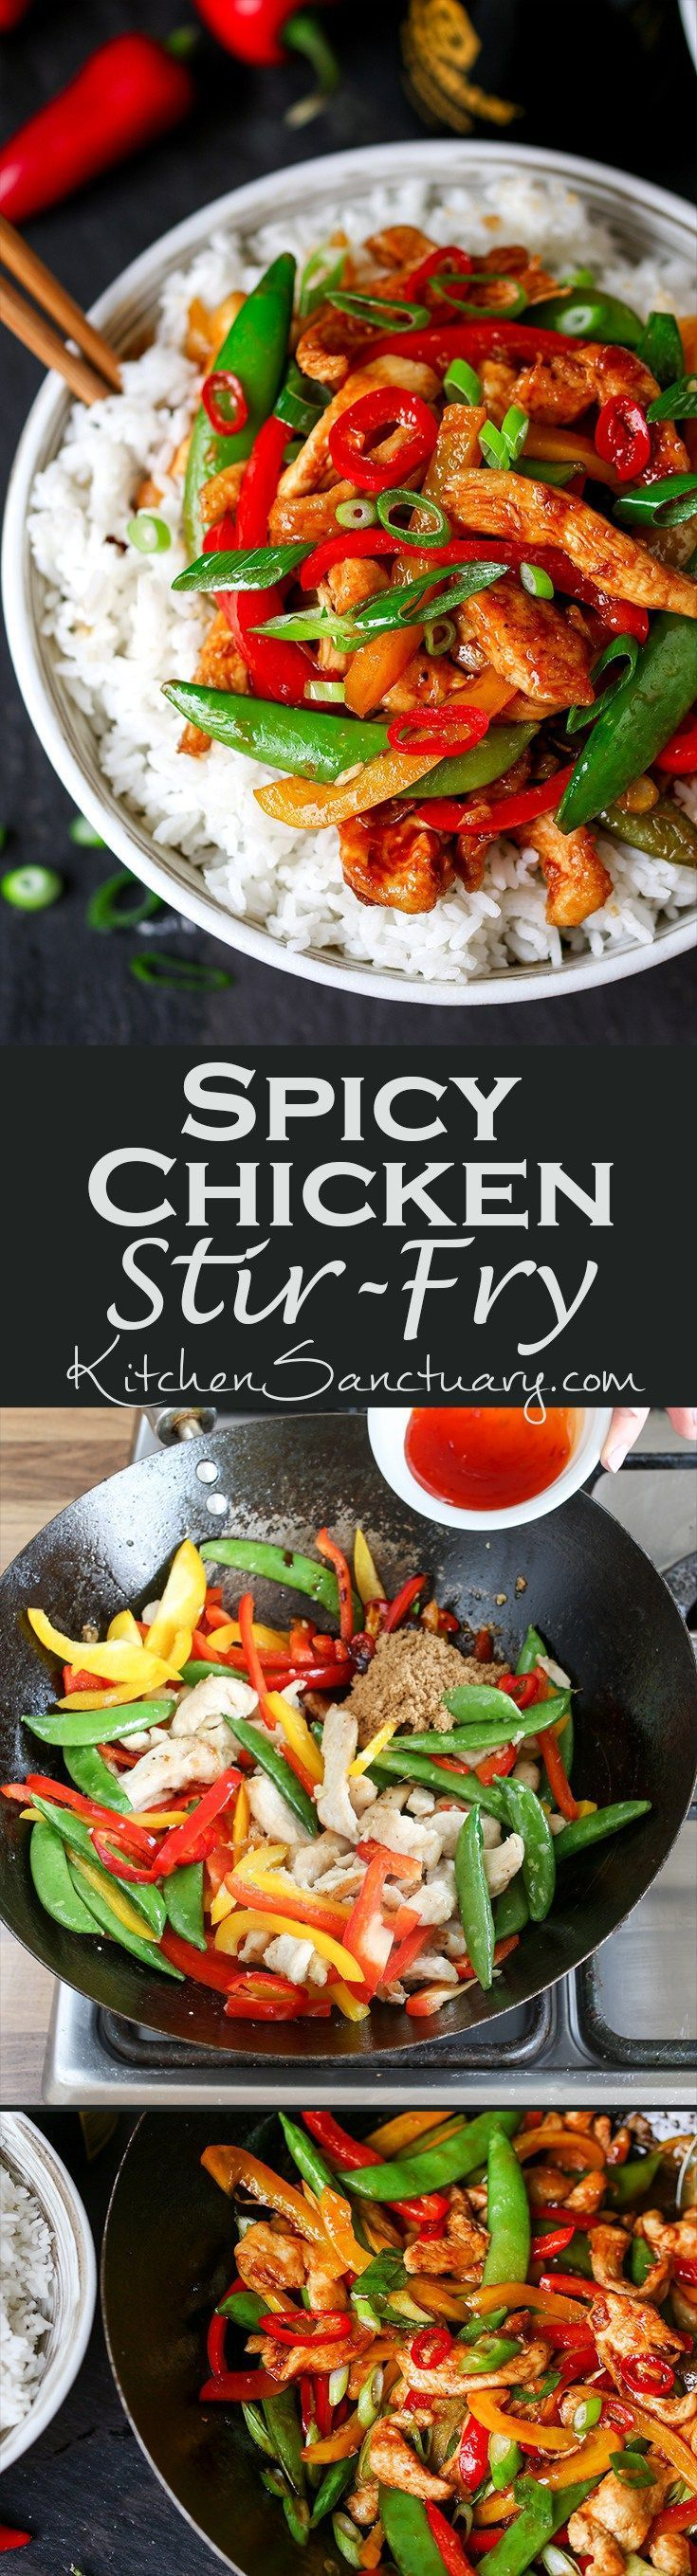 Easy Chicken and veggie stir fry - a quick mid-week meal with a kick of chilli heat that you can get on the table in less than 20 minutes! (Spicy Chicken Chili)